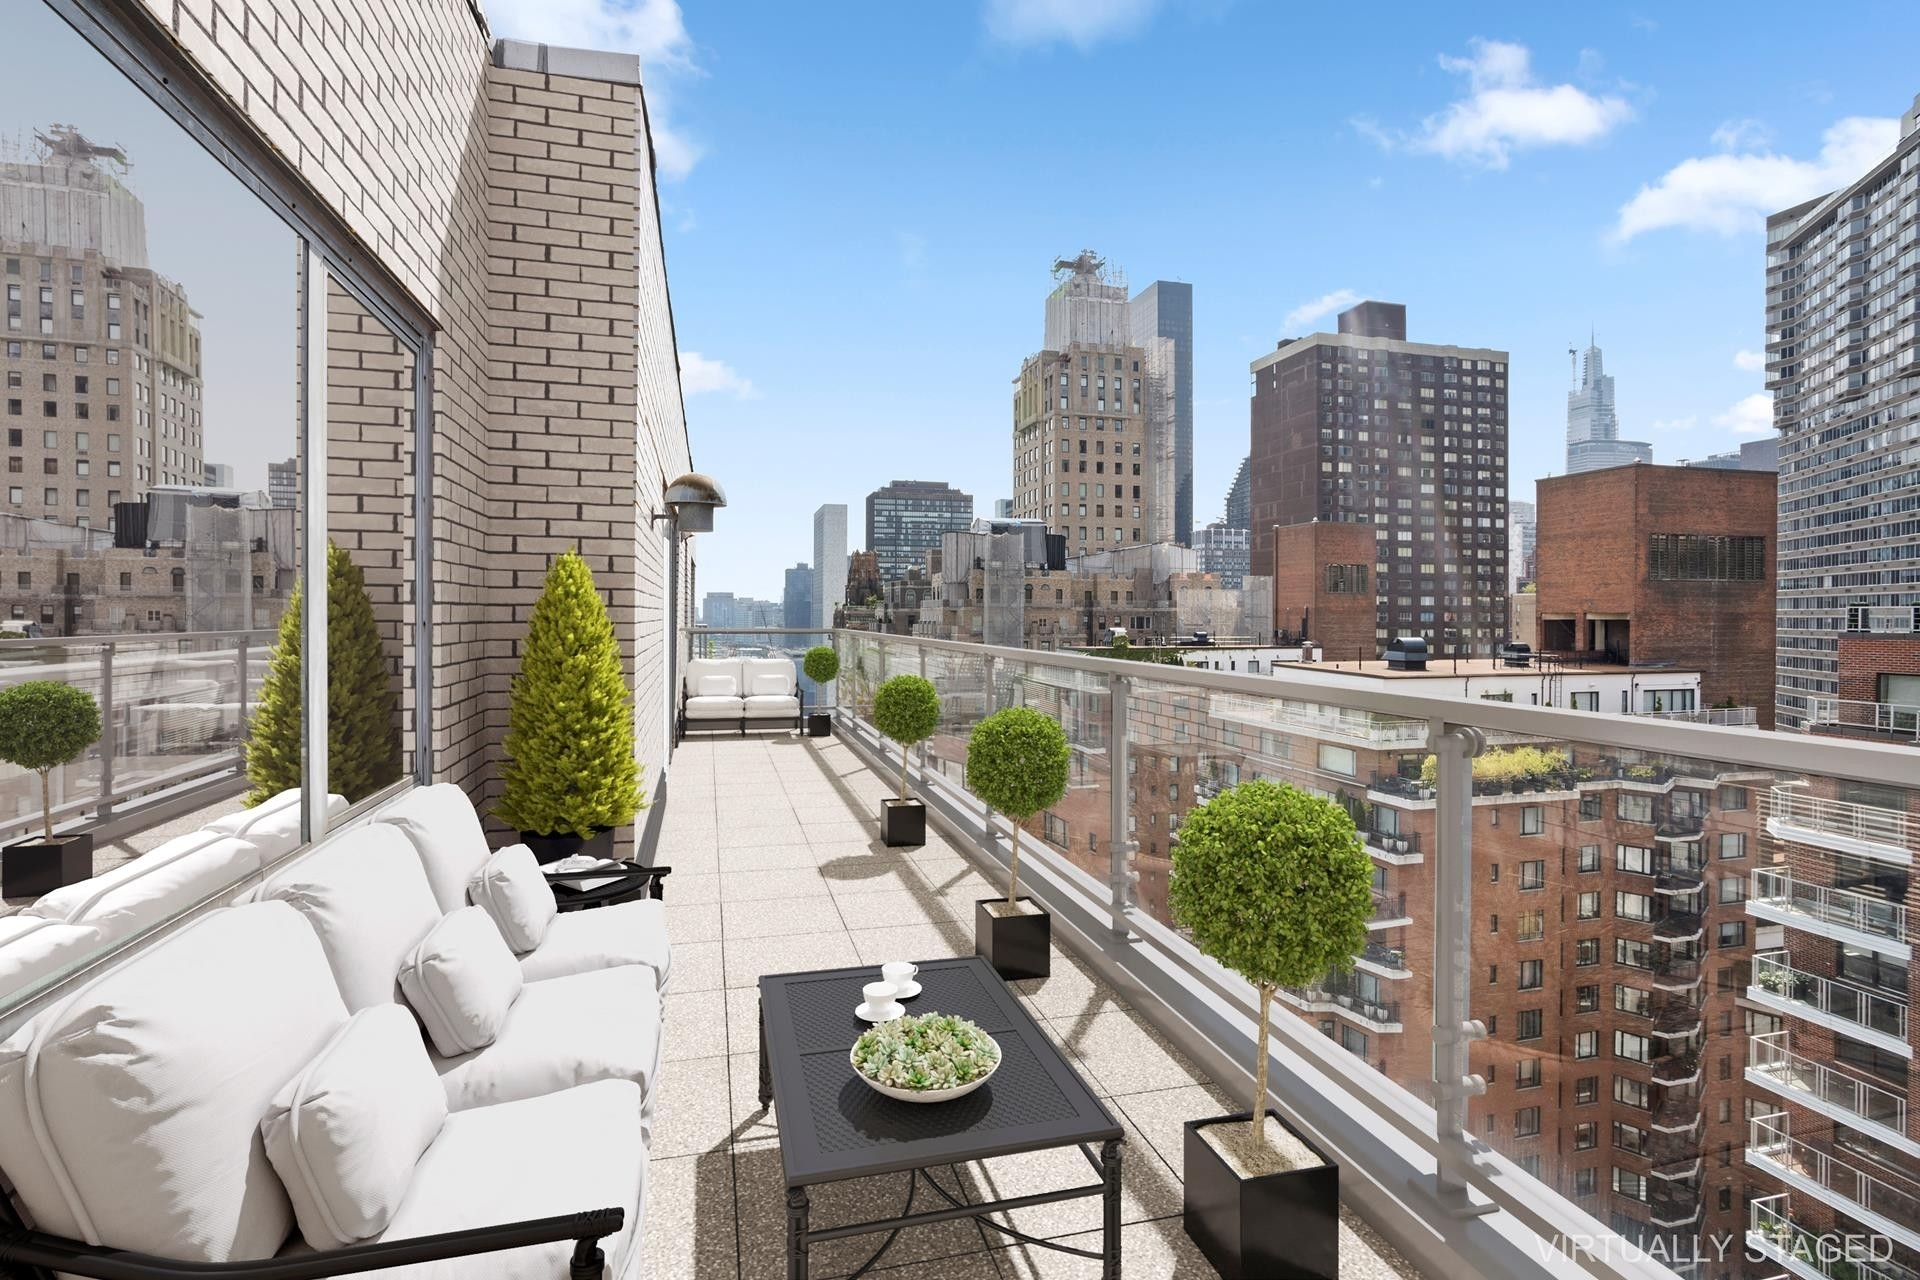 Co-op Properties for Sale at Cannon Point South, Inc., 45 Sutton Pl South, PHN Sutton Place, New York, NY 10022